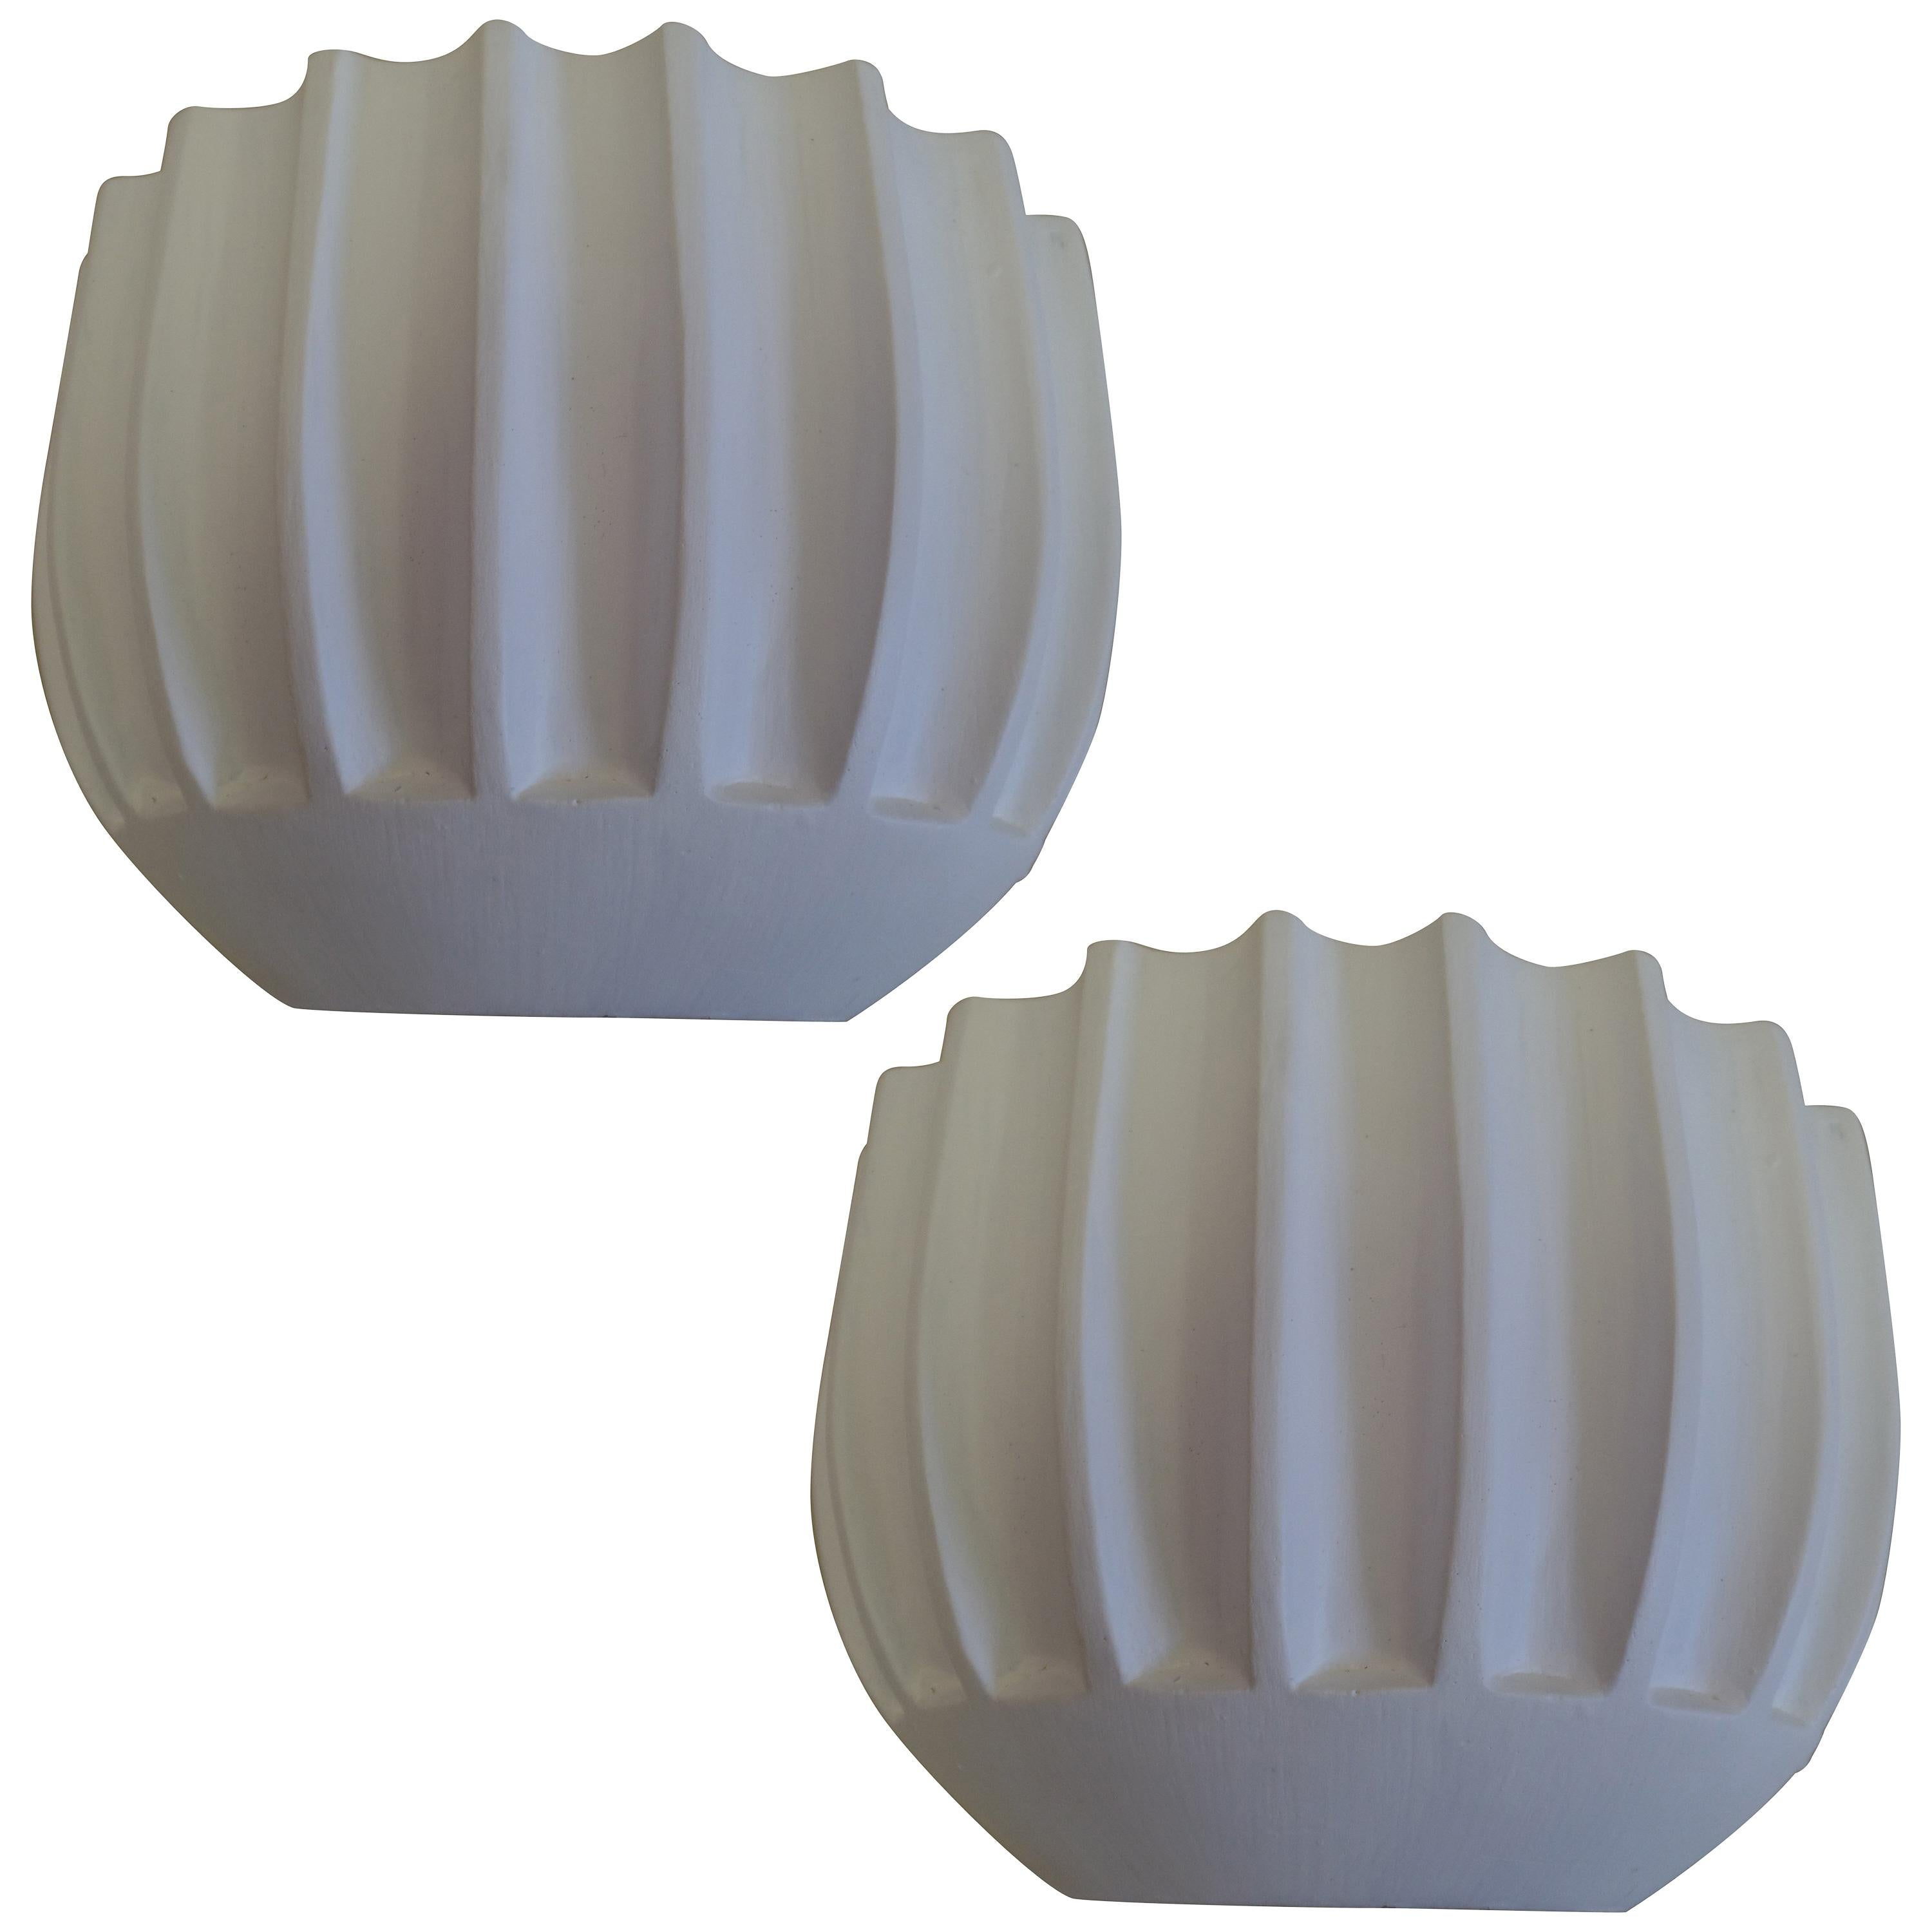 2 Pairs of French Art Deco / Mid-Century Modern Plaster Wall Sconces